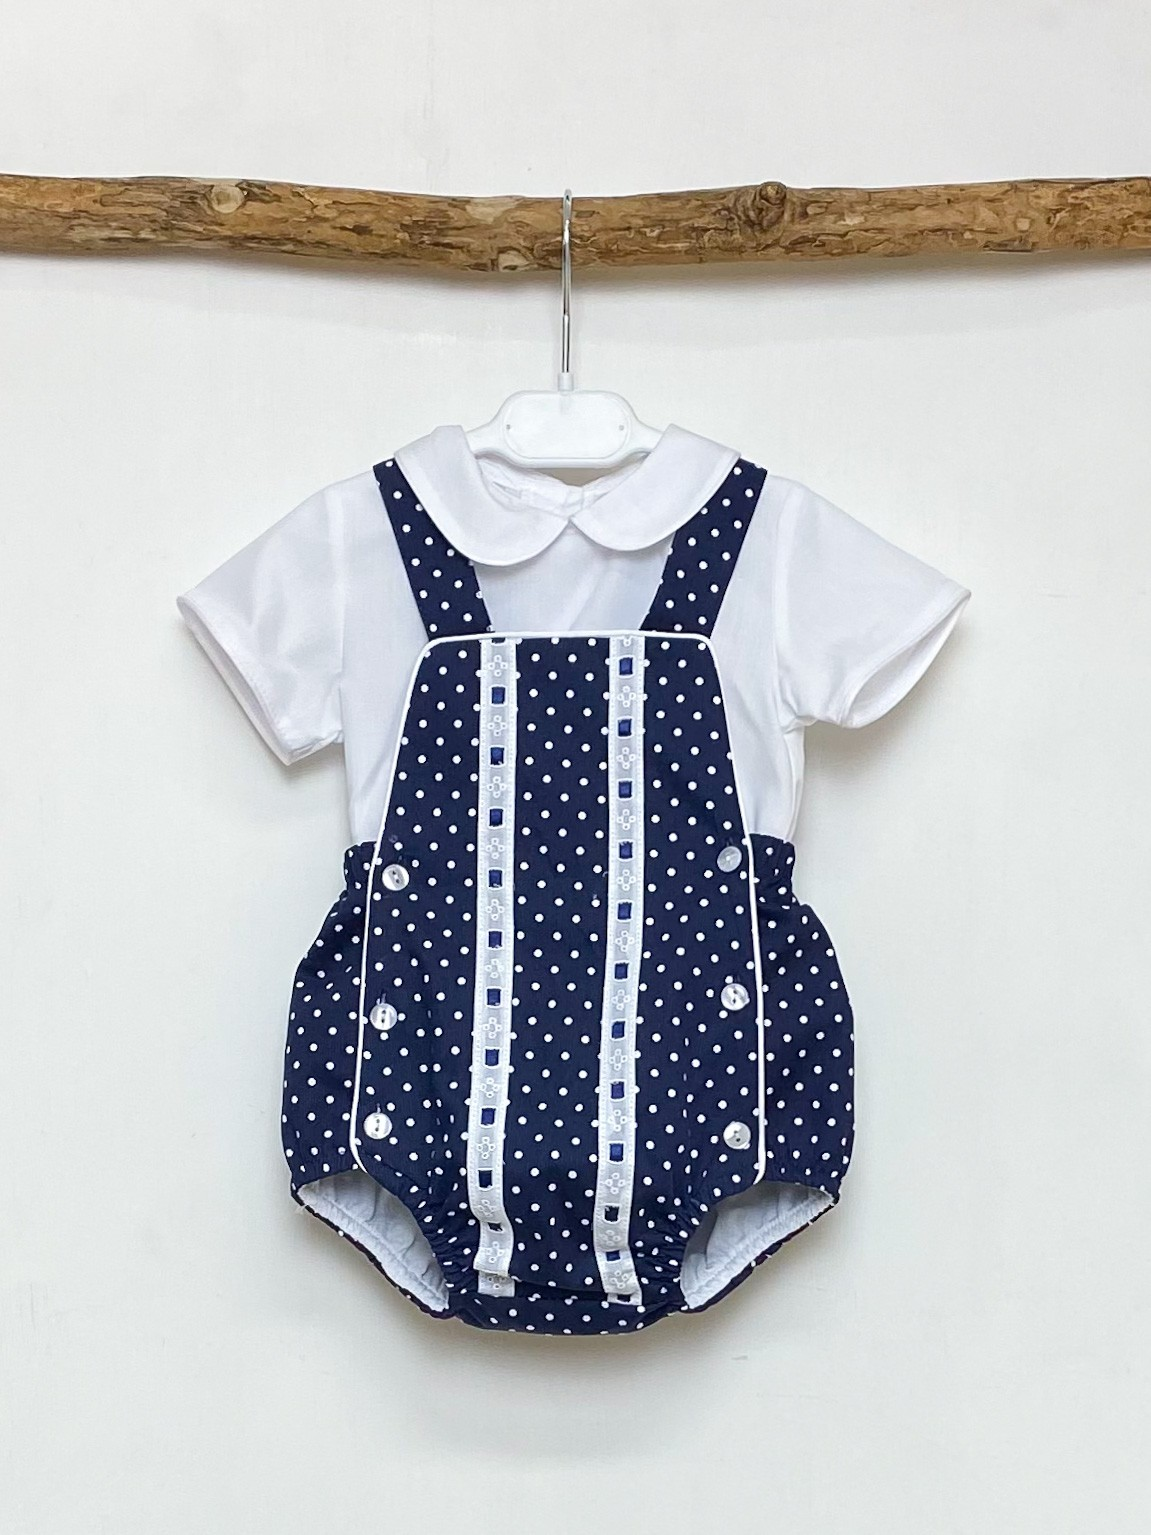 Shirt & Navy Polka Dot Romper